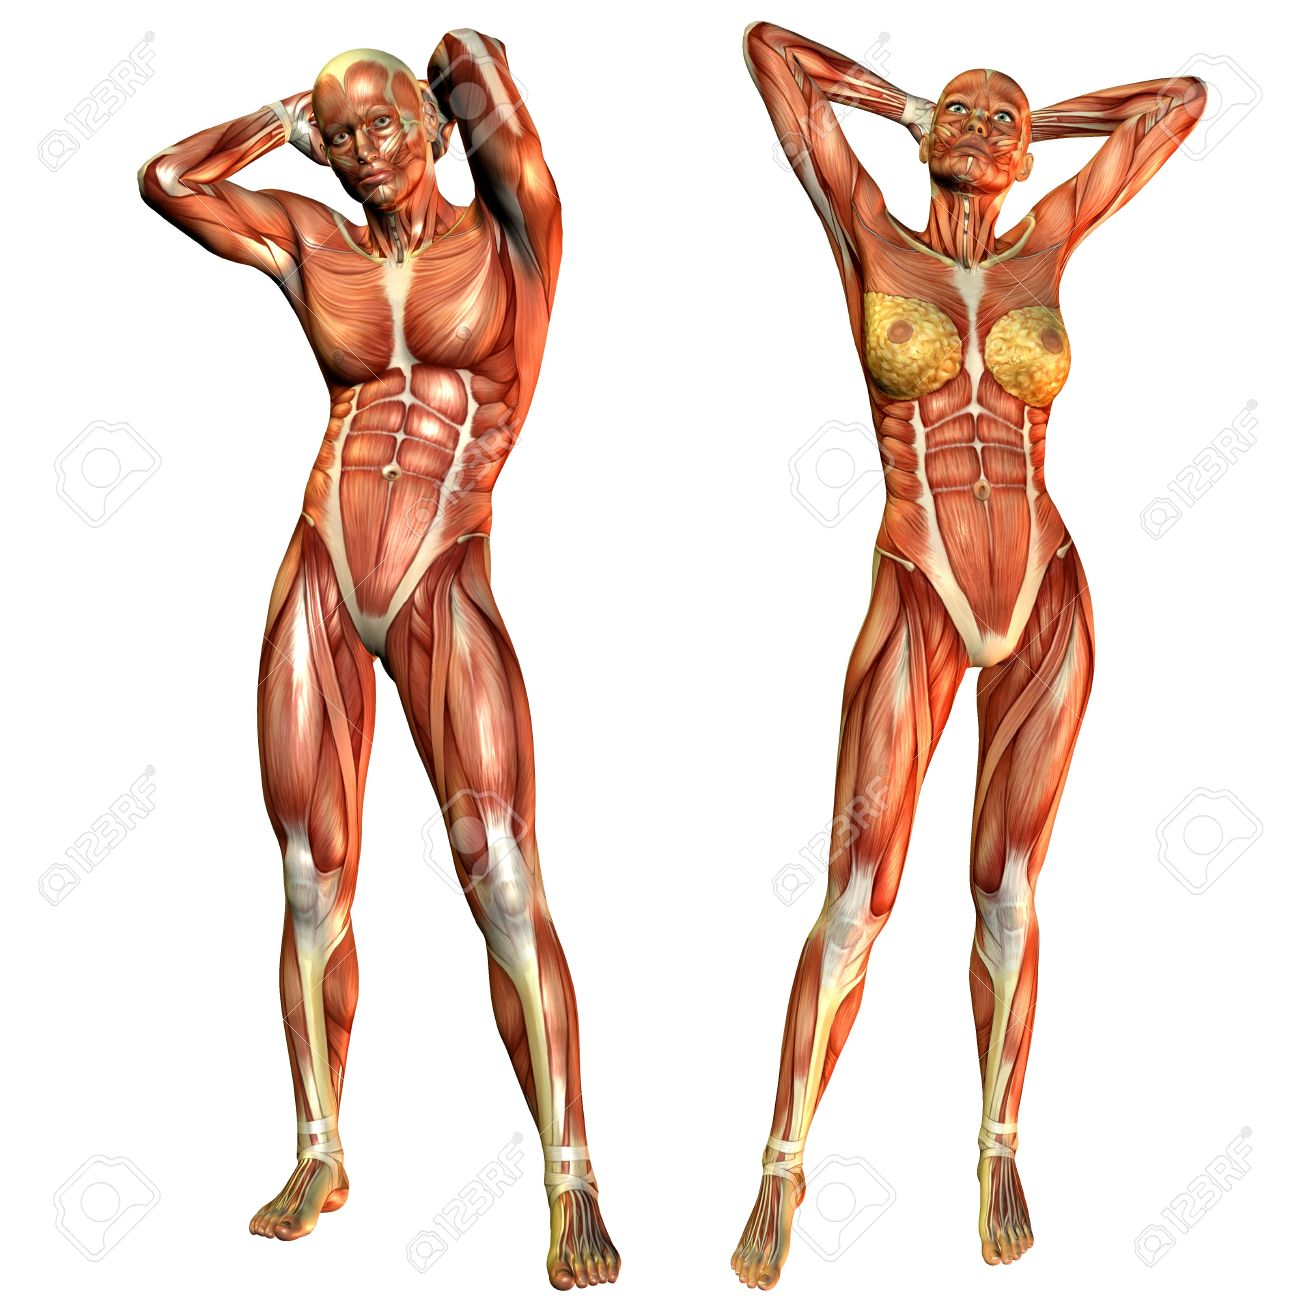 D Rendering Of The Female And Male Muscle Course In A Standing ...